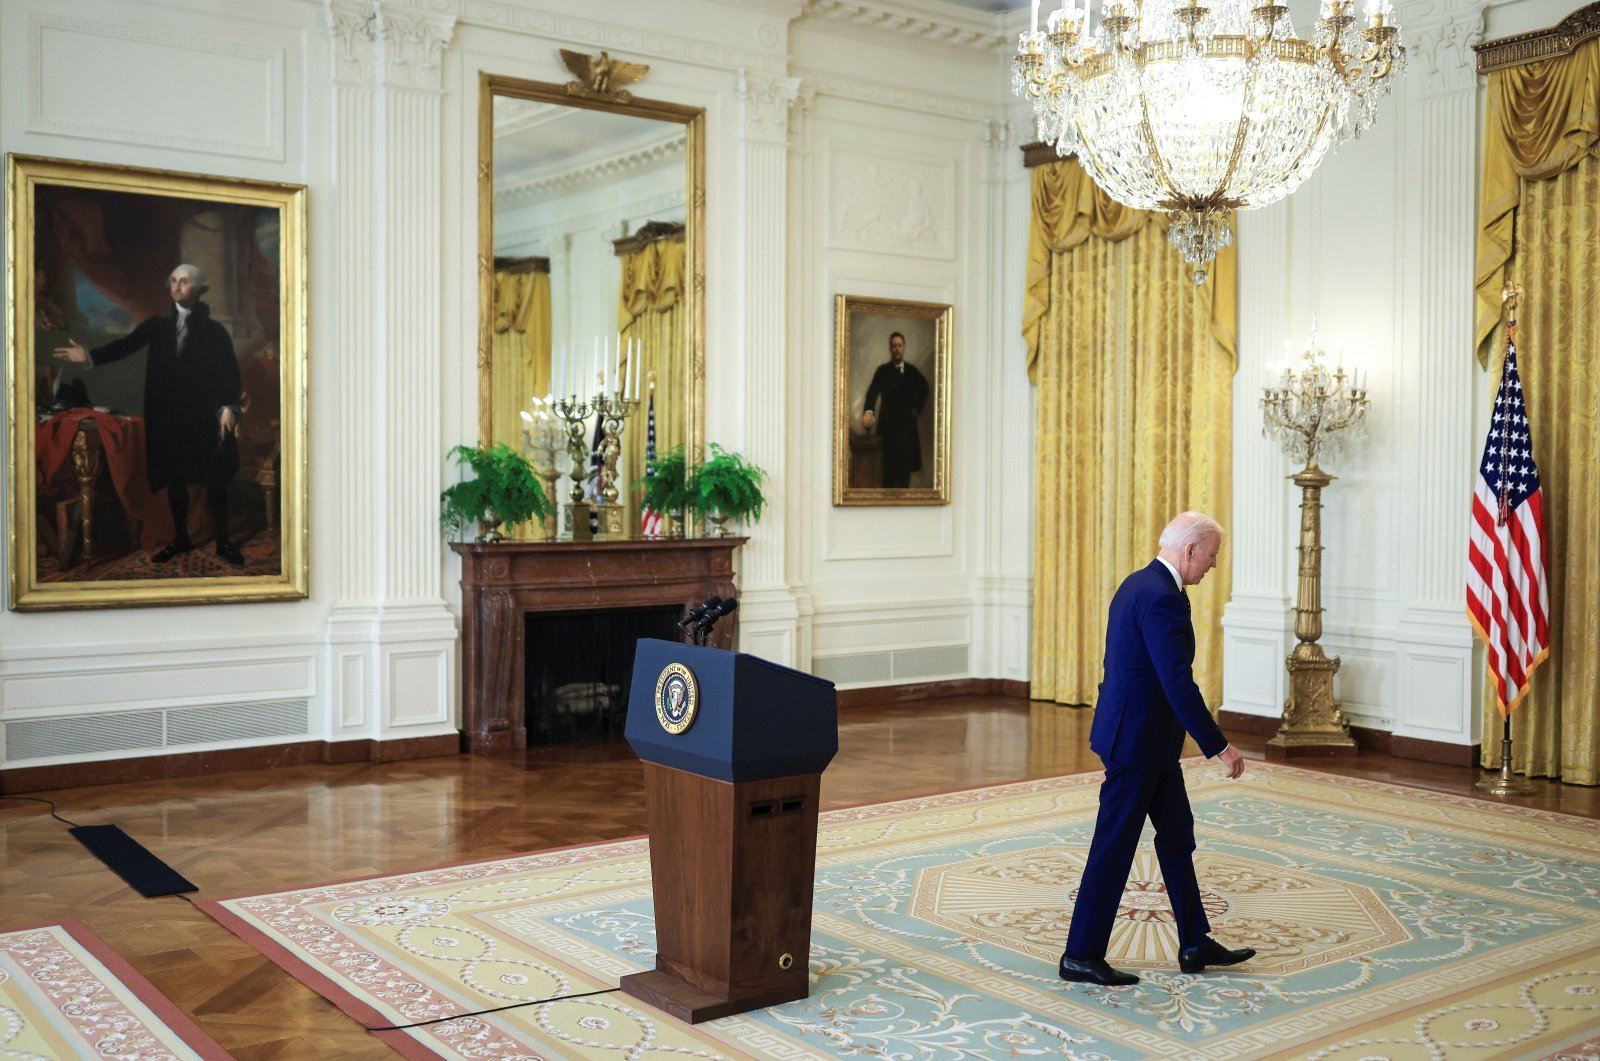 United States steps away from fighting with Russia | Column